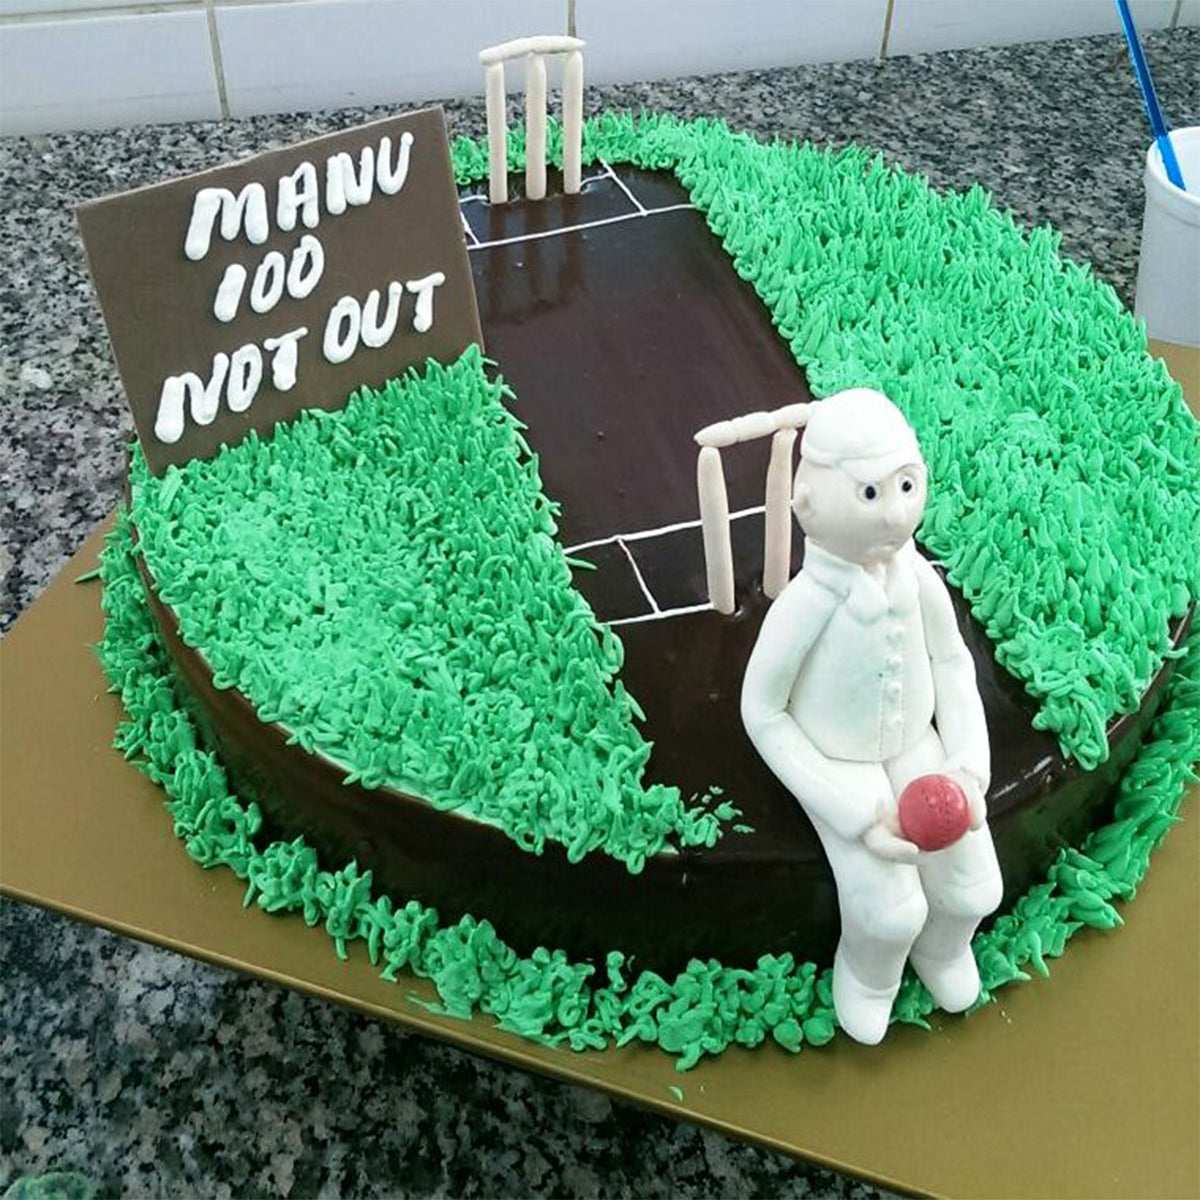 100 Not Out Funny Cake 2019 | CWD